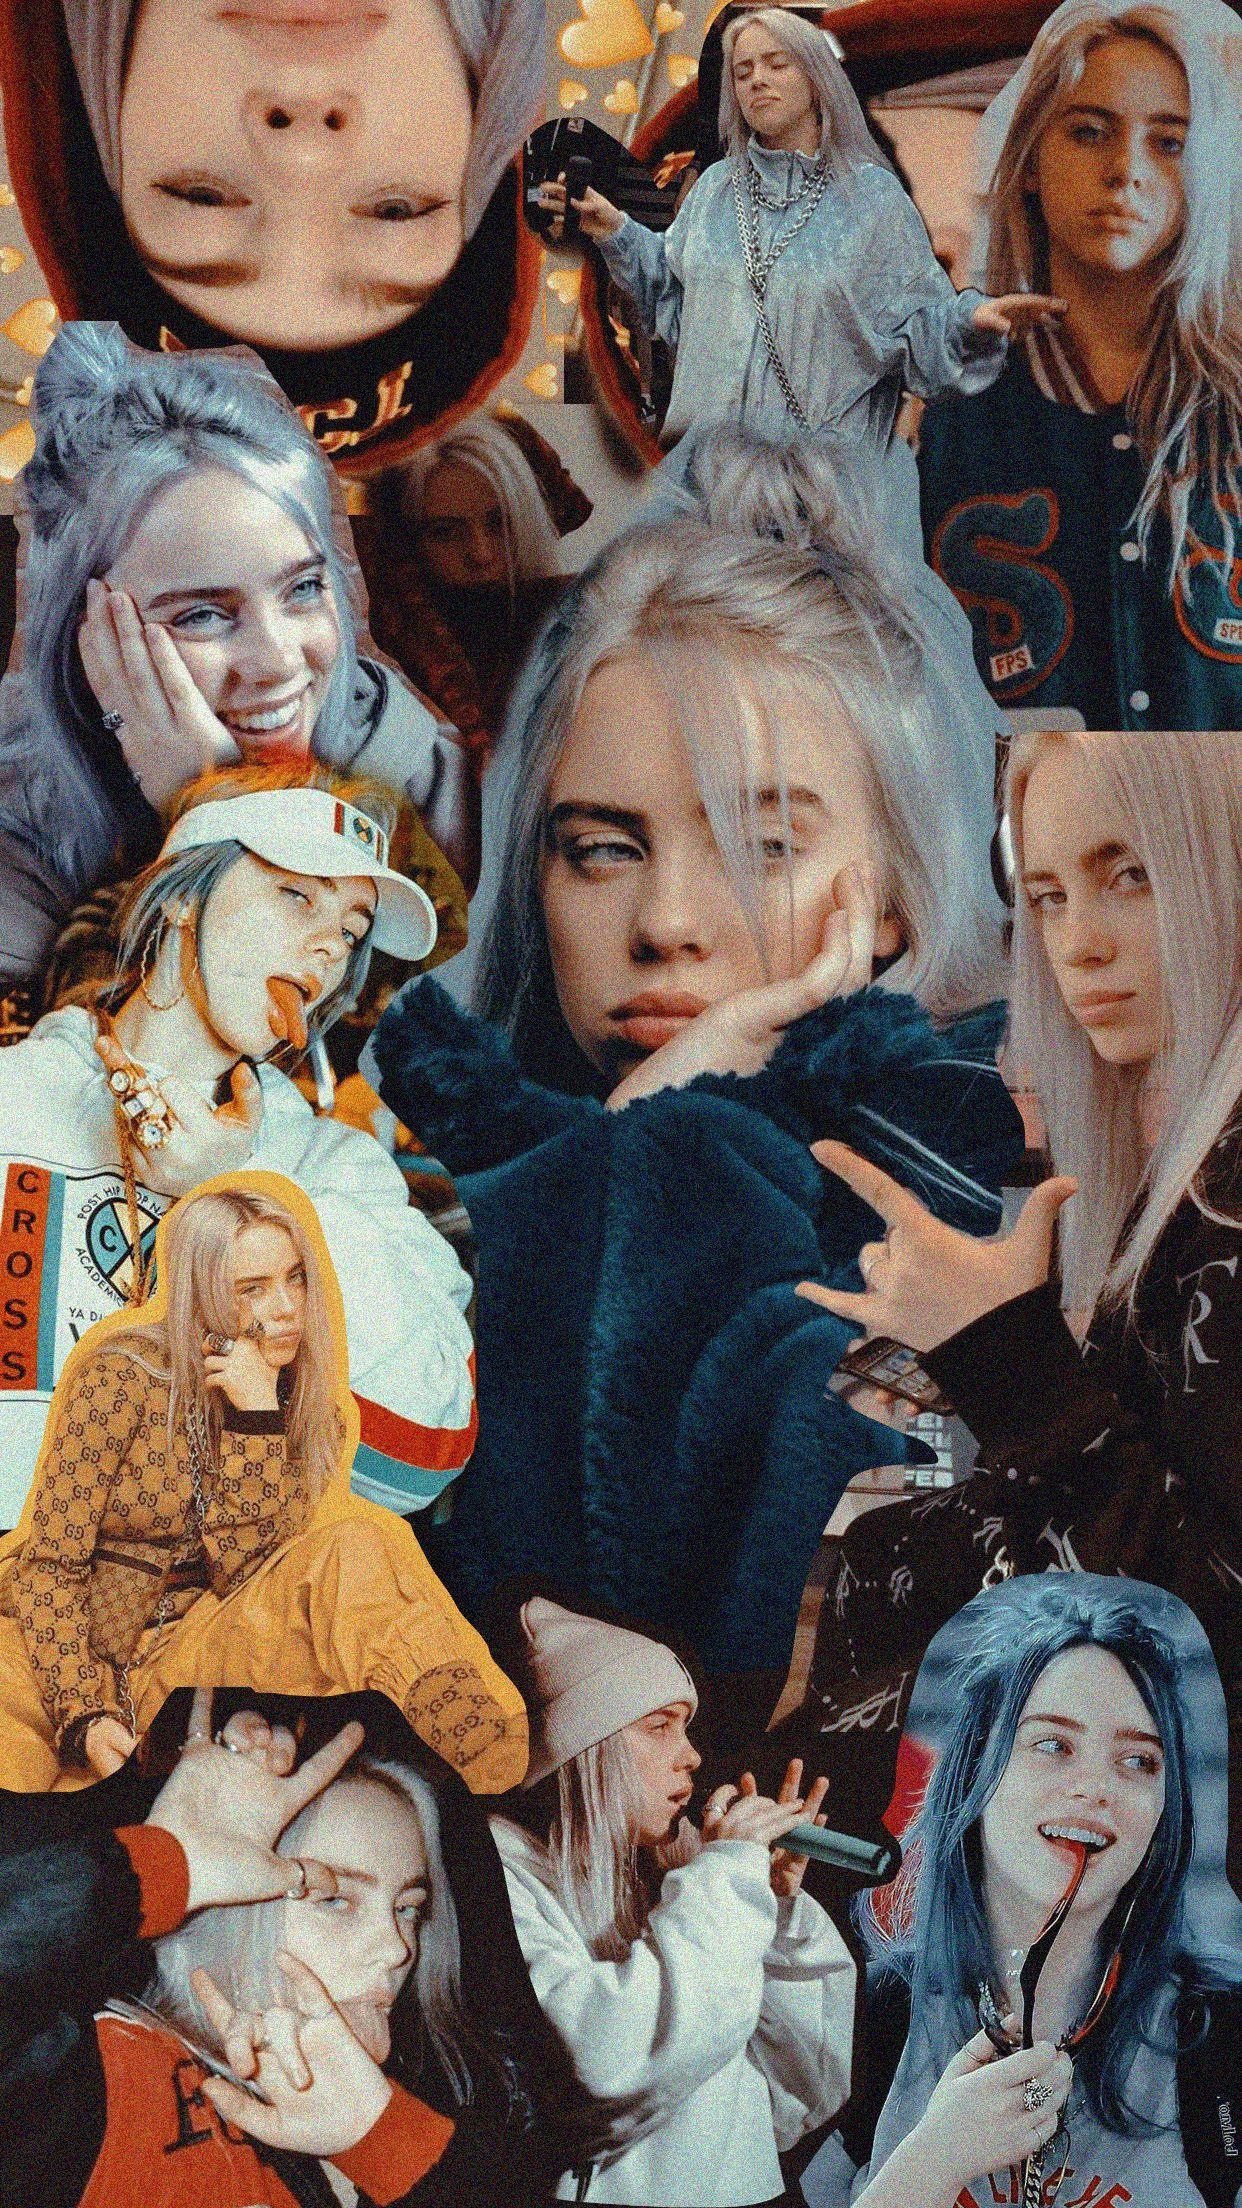 Billie Eilish Cute 2019 Wallpapers Wallpaper Cave